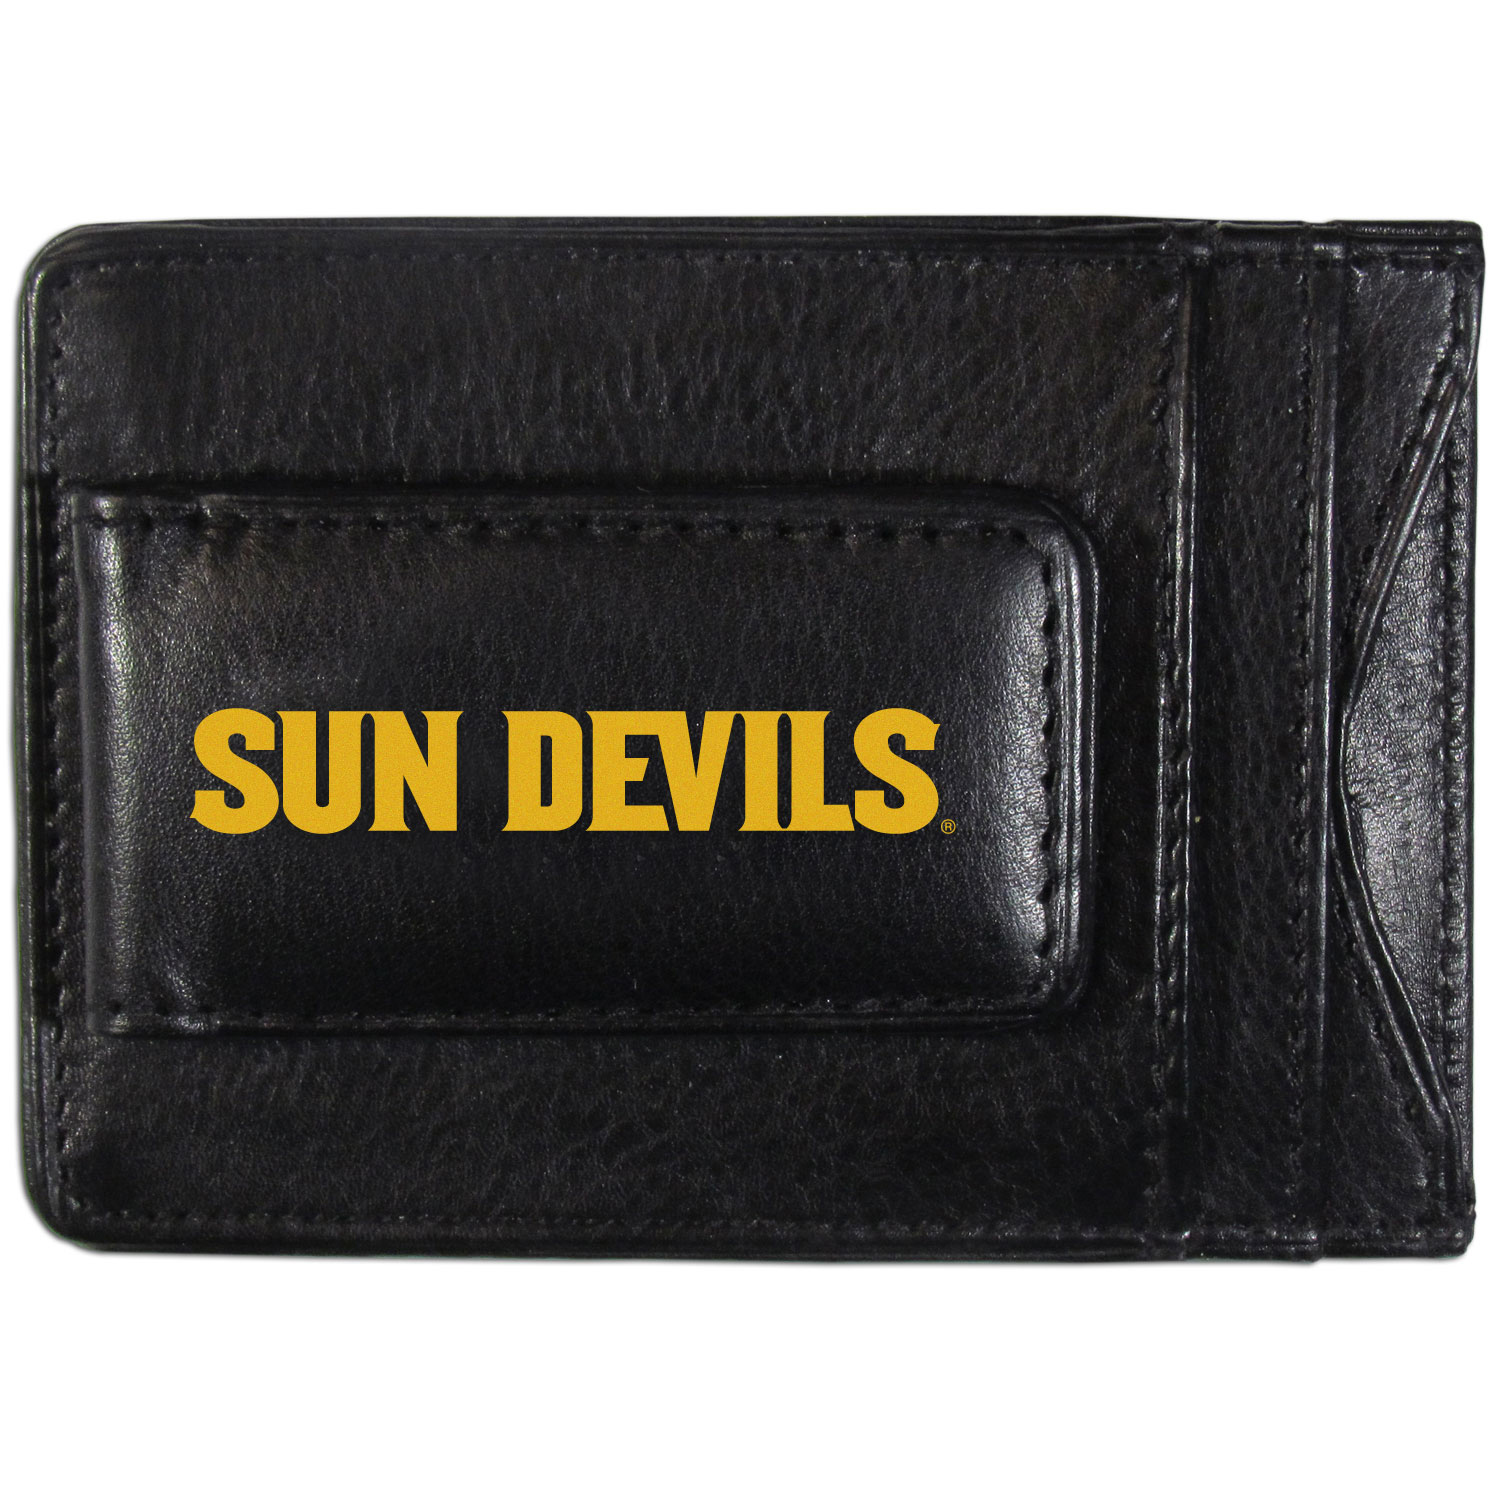 Arizona St. Sun Devils Logo Leather Cash and Cardholder - This super slim leather wallet lets you have all the benefits of a money clip while keeping the organization of a wallet. On one side of this front pocket wallet there is a strong, magnetic money clip to keep your cash easily accessible and the?Arizona St. Sun Devils team logo on the front. The versatile men's accessory is a perfect addition to your fan apparel.